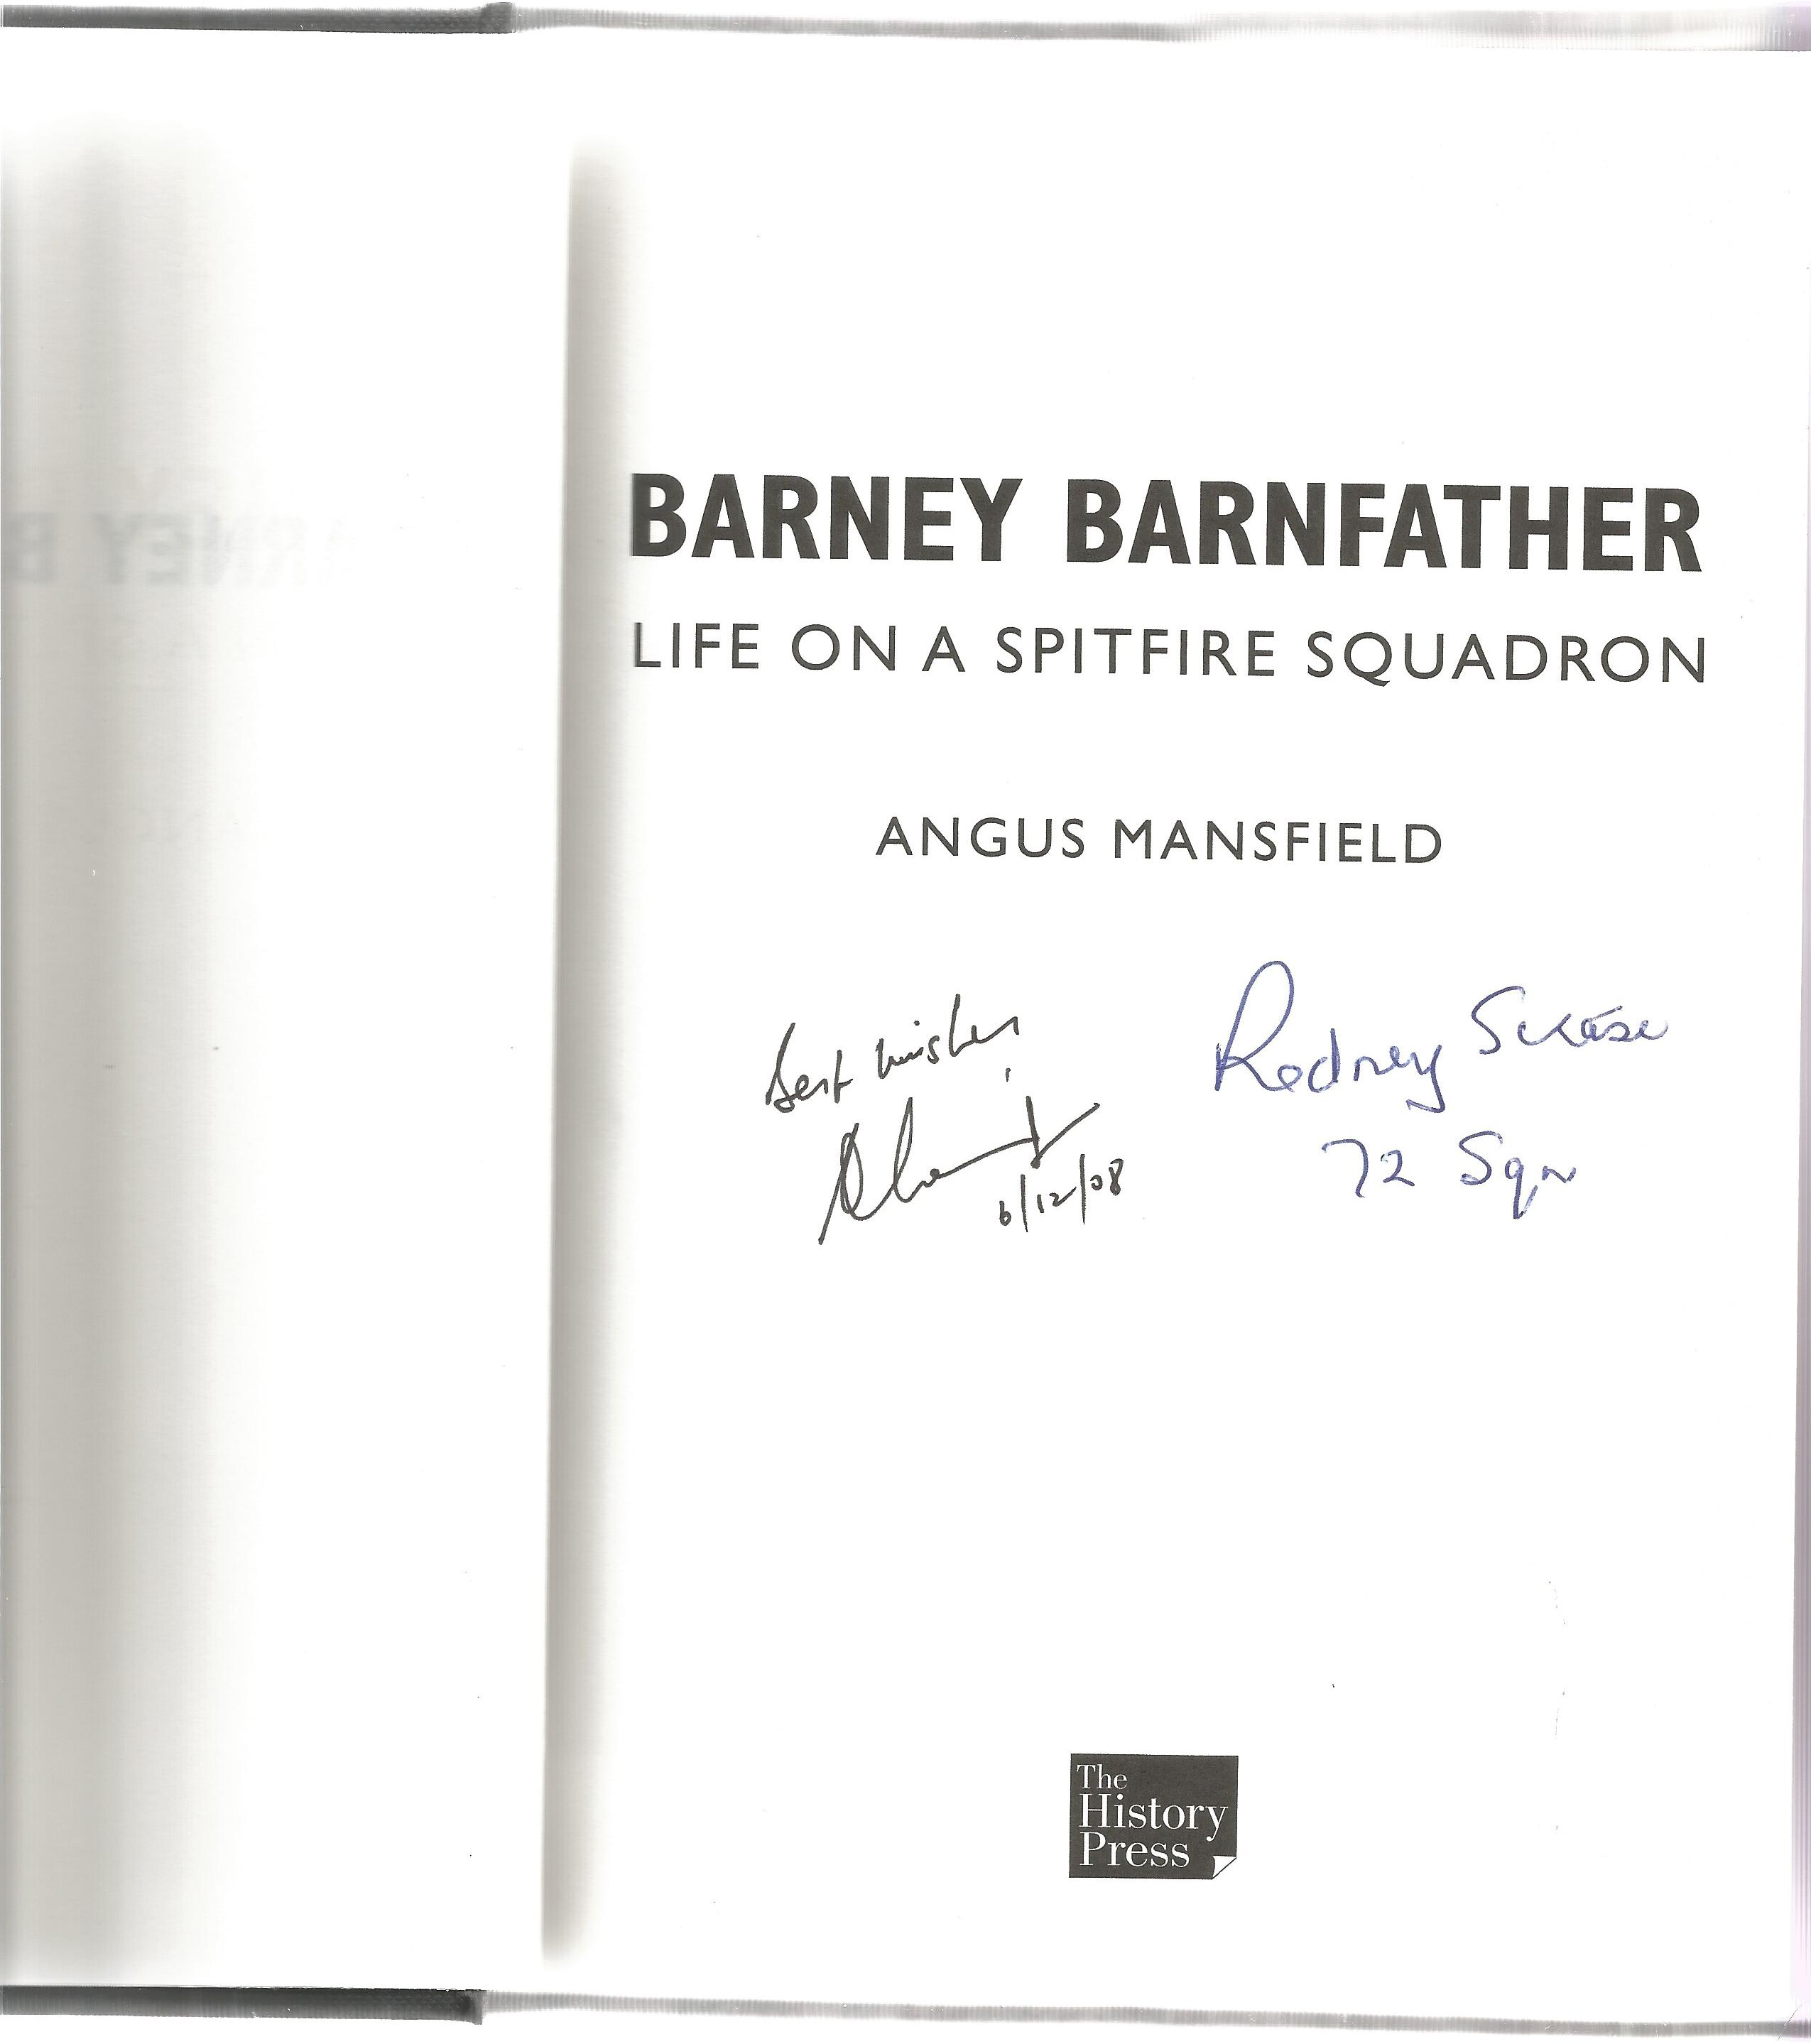 Angus Mansfield. Barney Barnfather Life On A Spitfire Squadron. A WW2 First Edition Hardback book. - Image 2 of 3